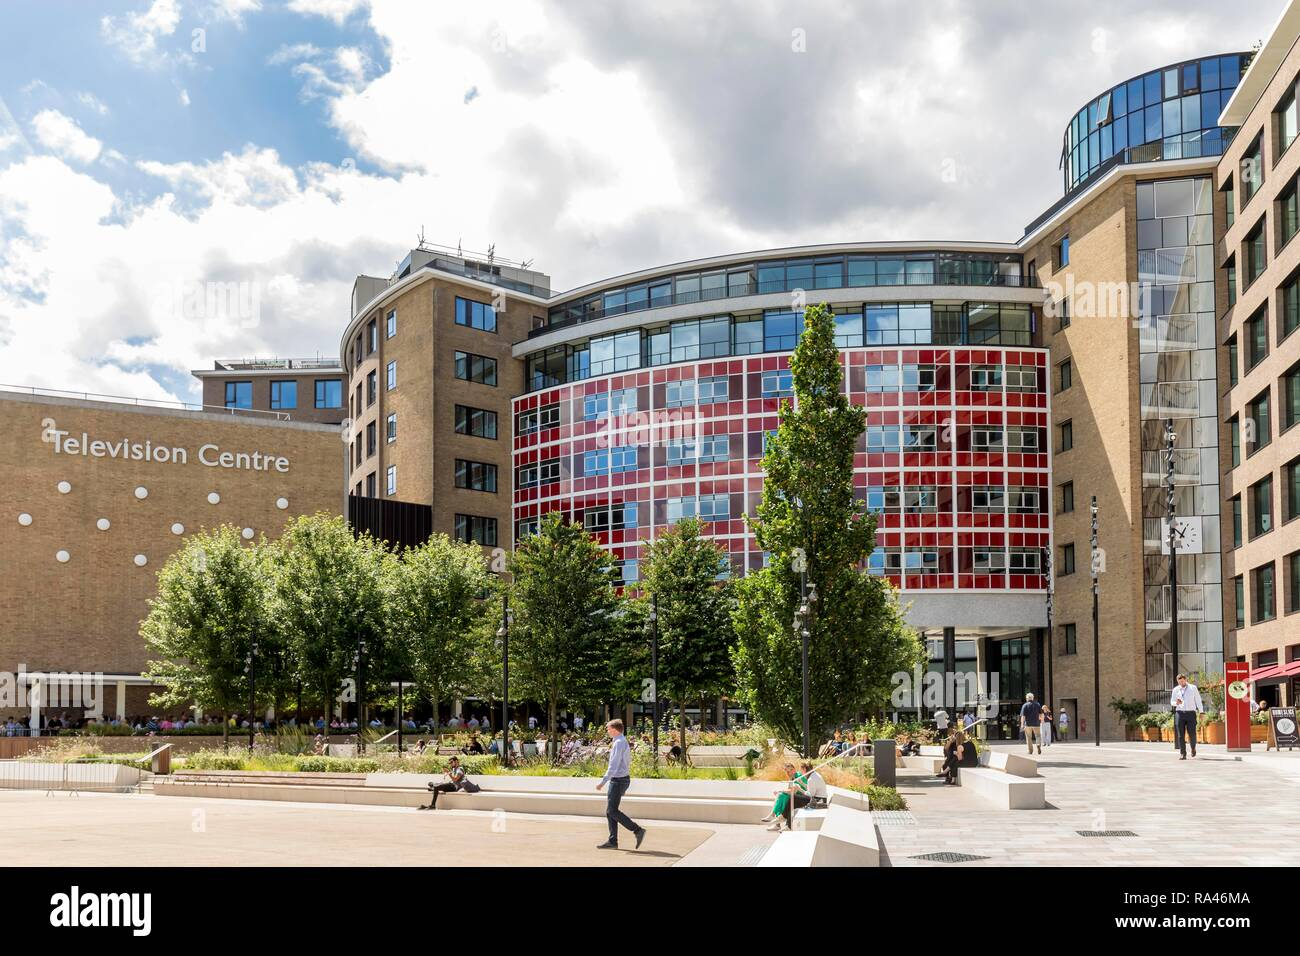 BBC Television Centre, White City, London, Great Britain - Stock Image